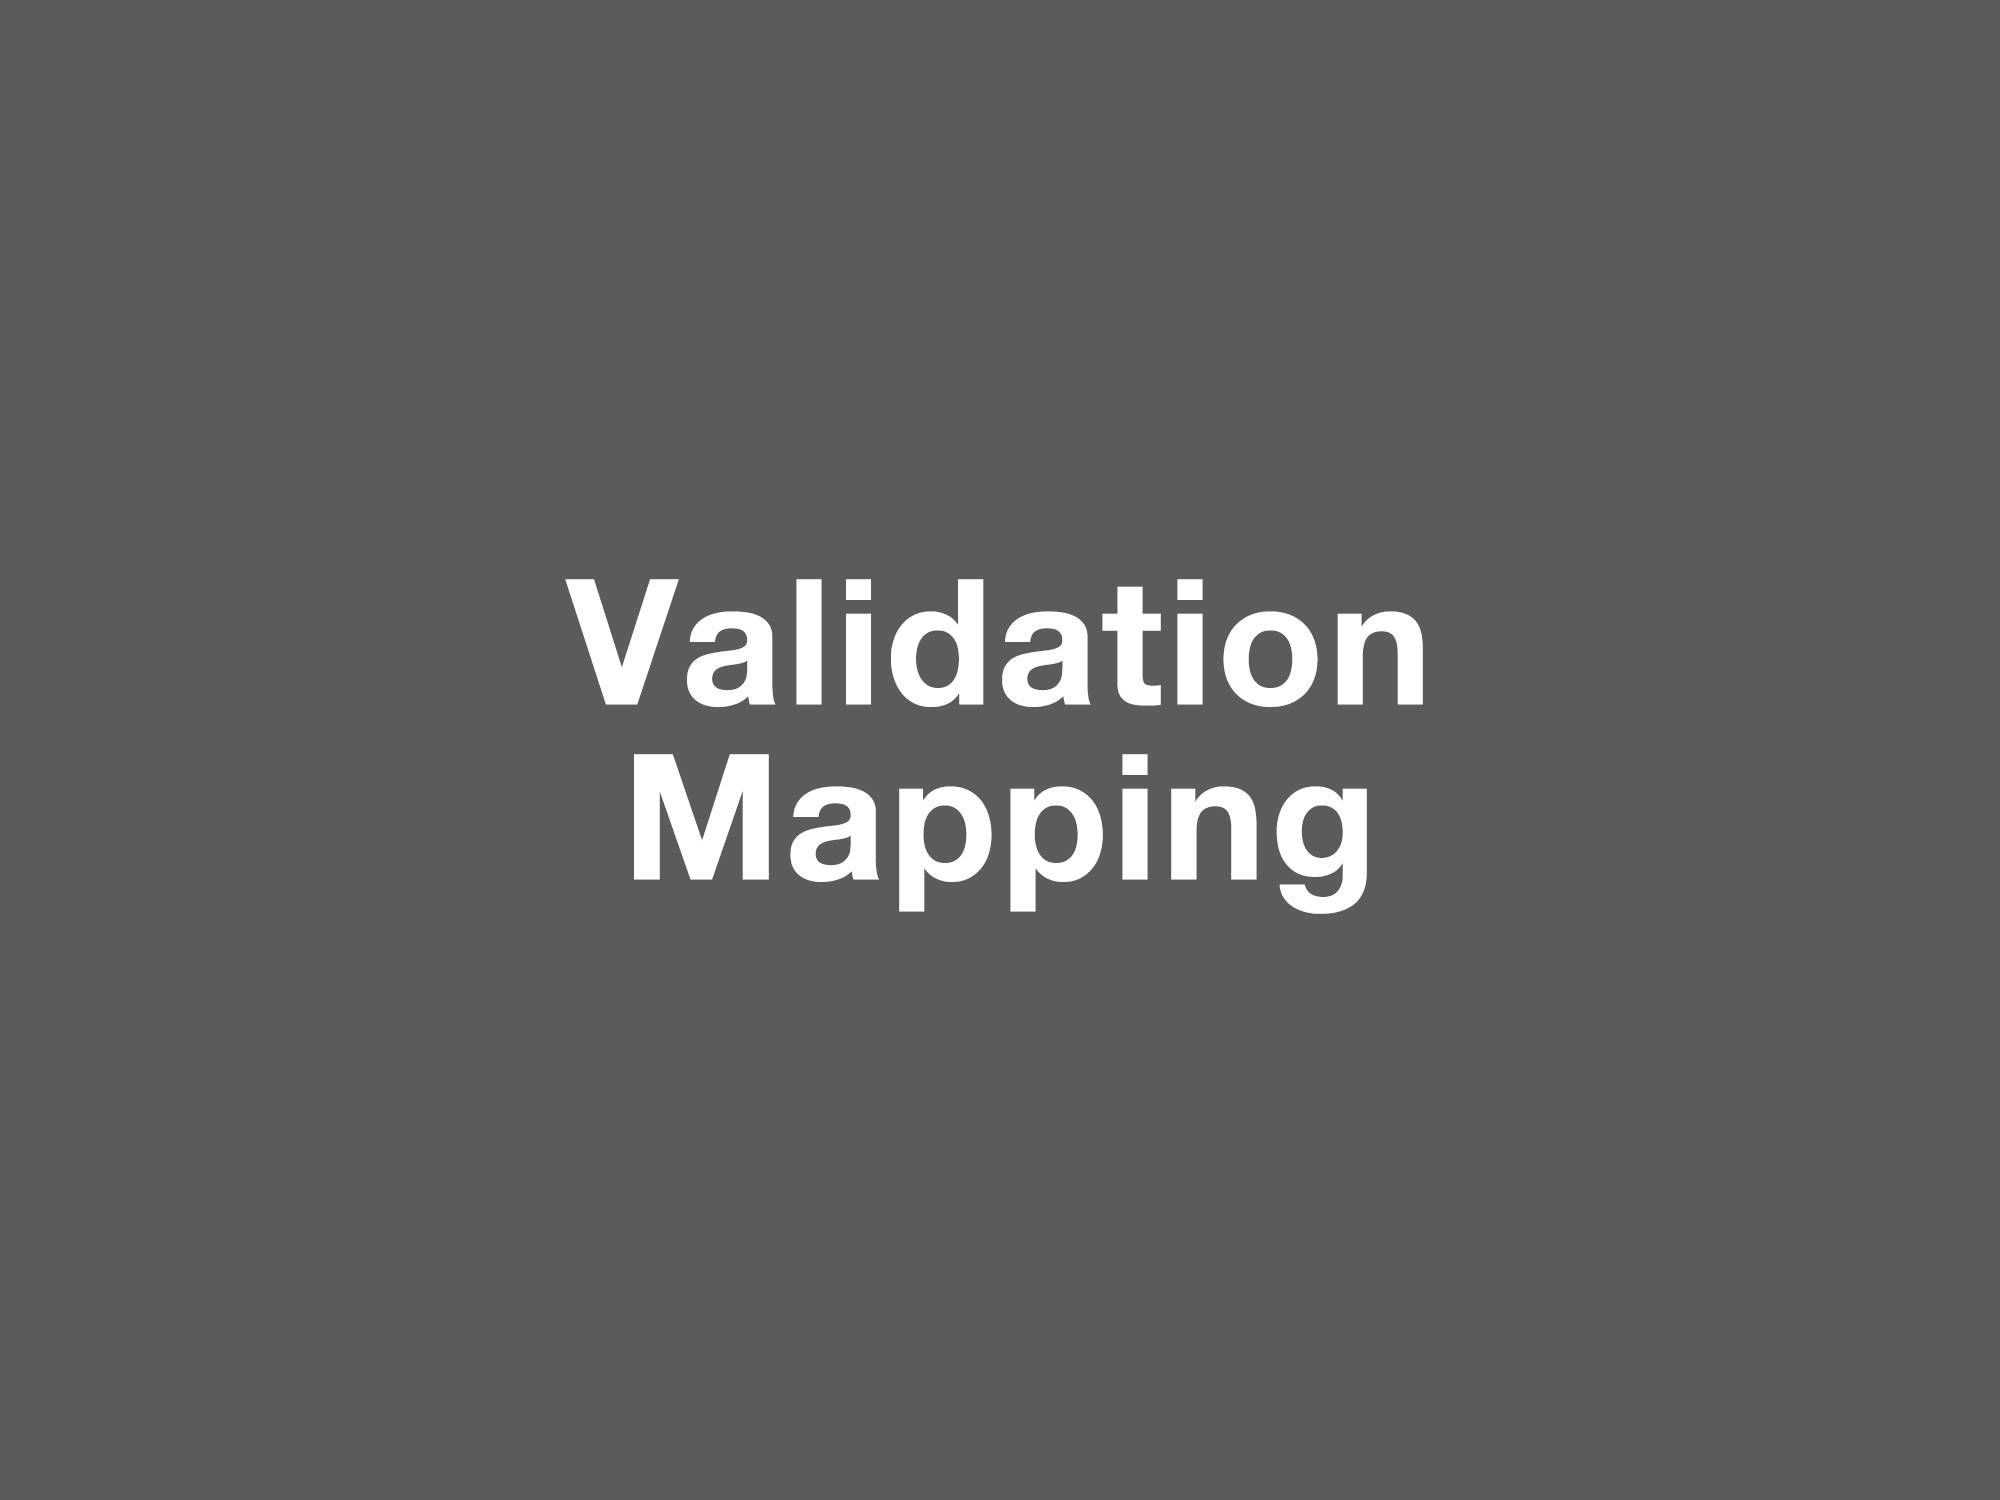 validation_mapping-header-US.jpg